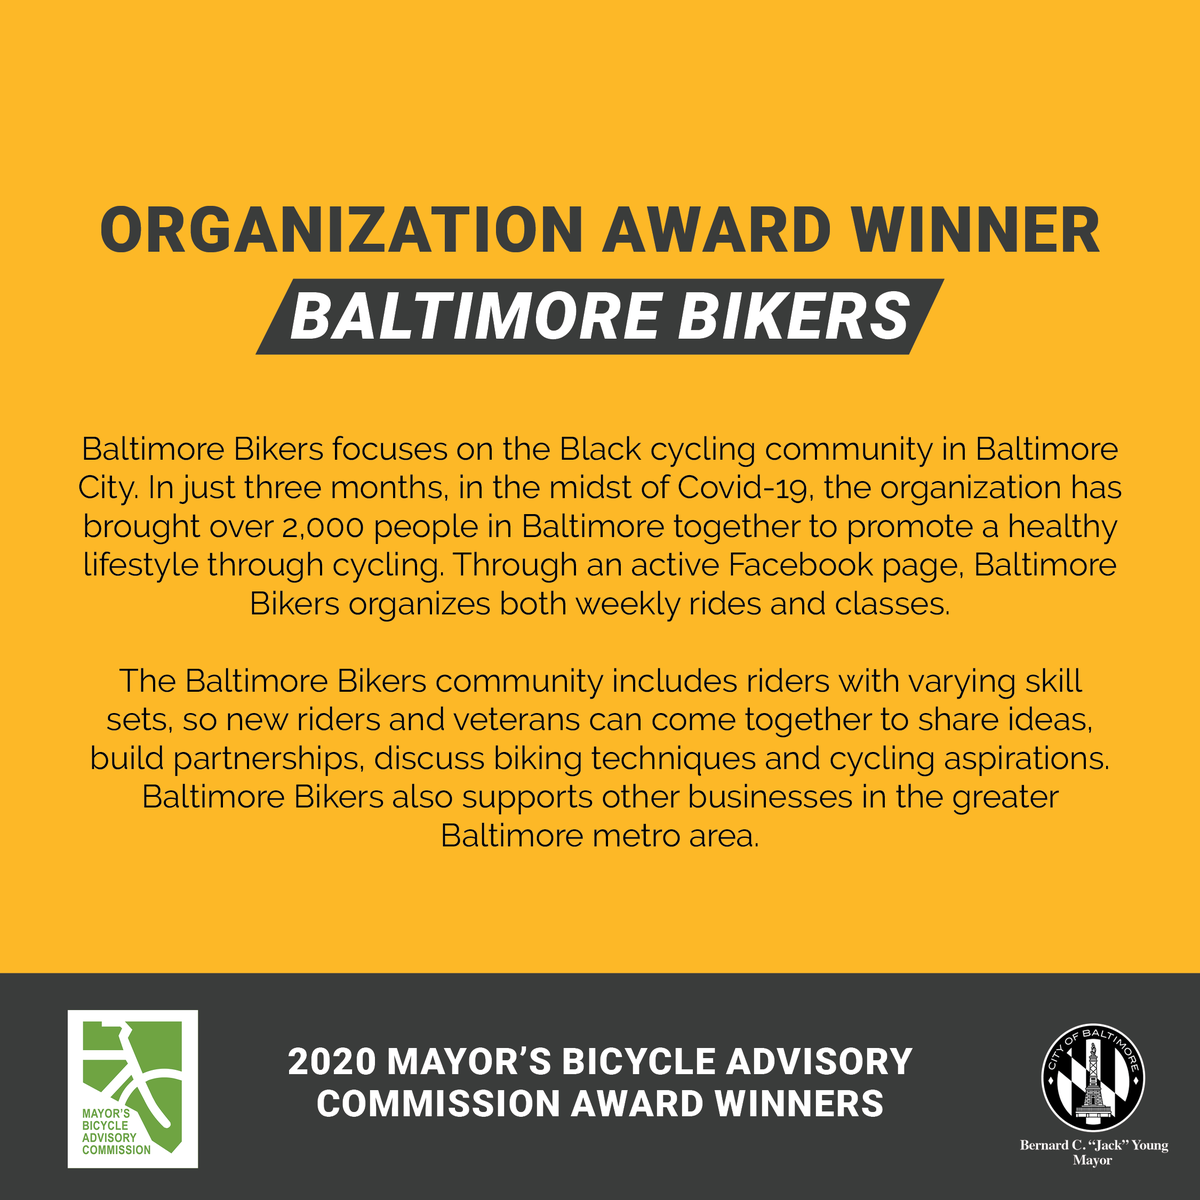 The Mayor's Bicycle Advisory Commission (MBAC) is proud to announce the winners of its inaugural MBAC Awards. These awards recognize individuals and organizations who are making bicycling, and our city, better for all. Congratulations to all of the winners!